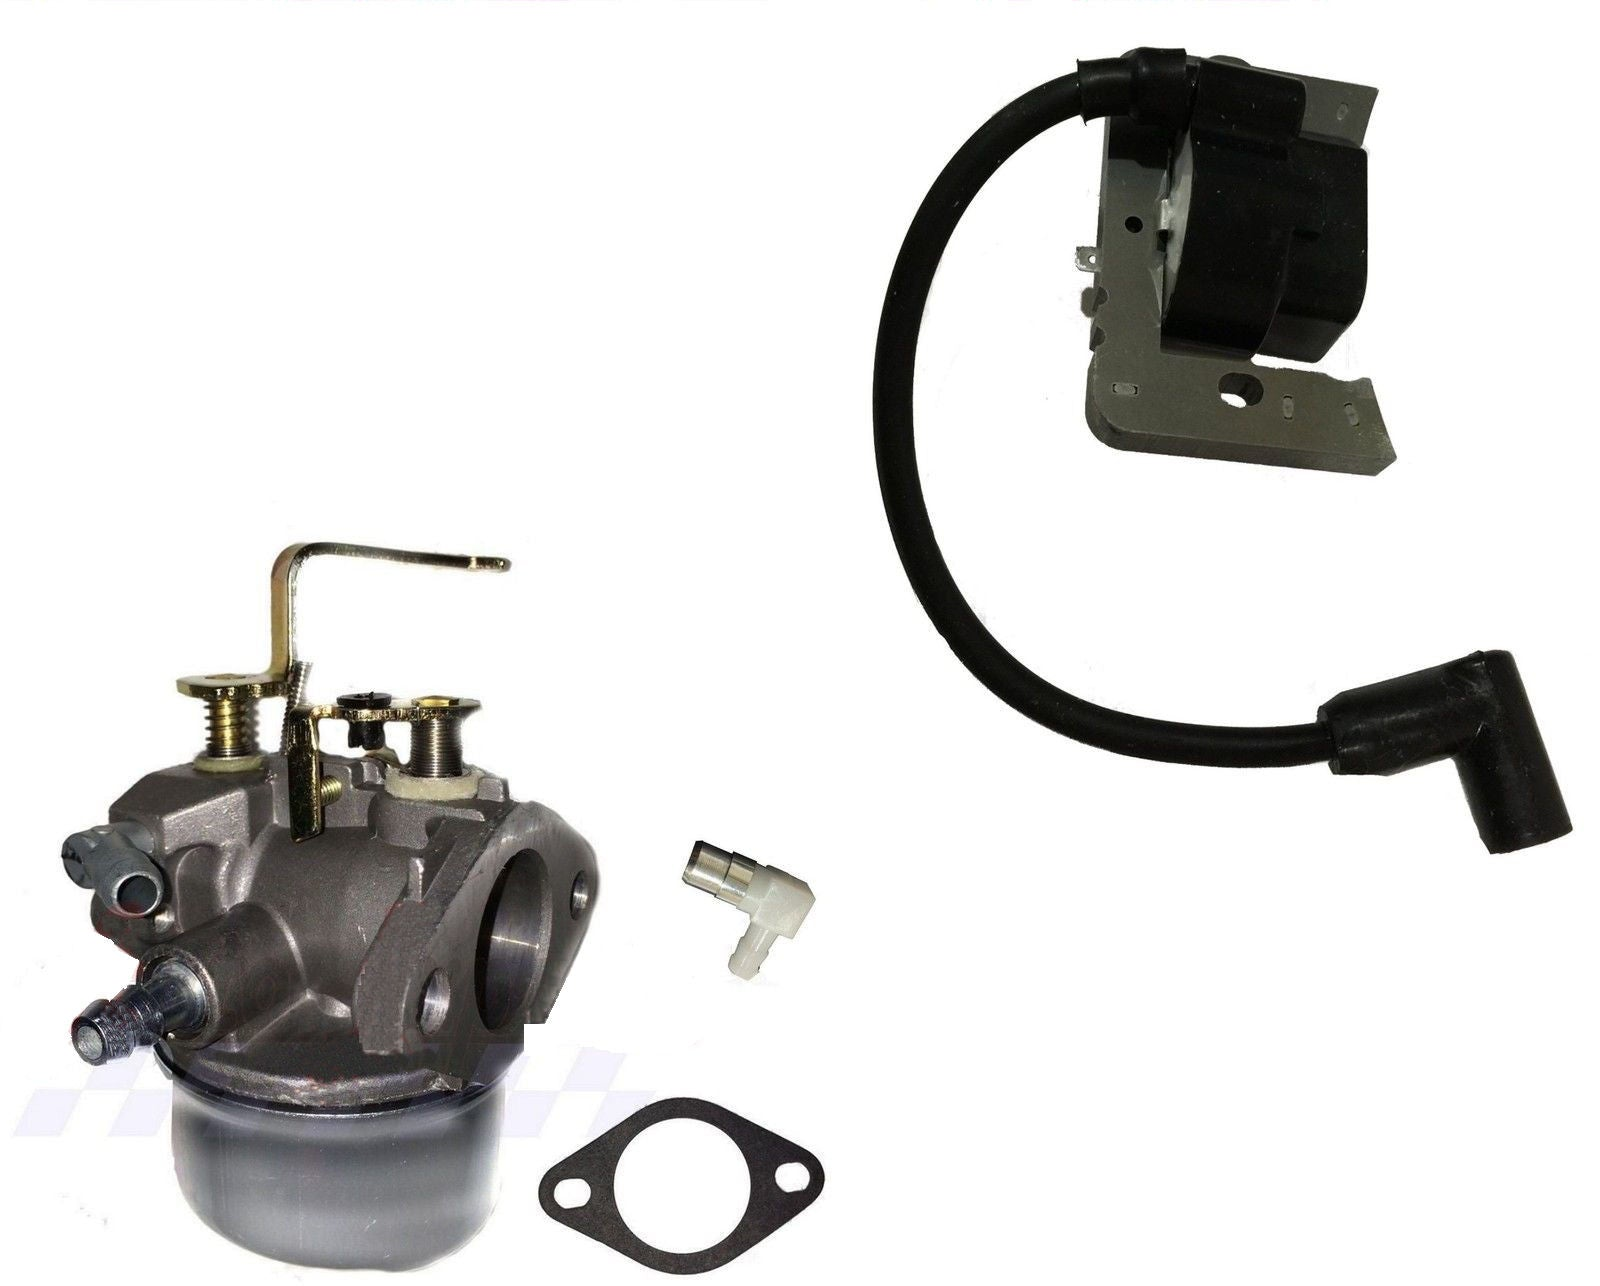 Ignition Coil & Carburetor Tecumseh Fits Tecumseh Model LH358EA - AE-Power